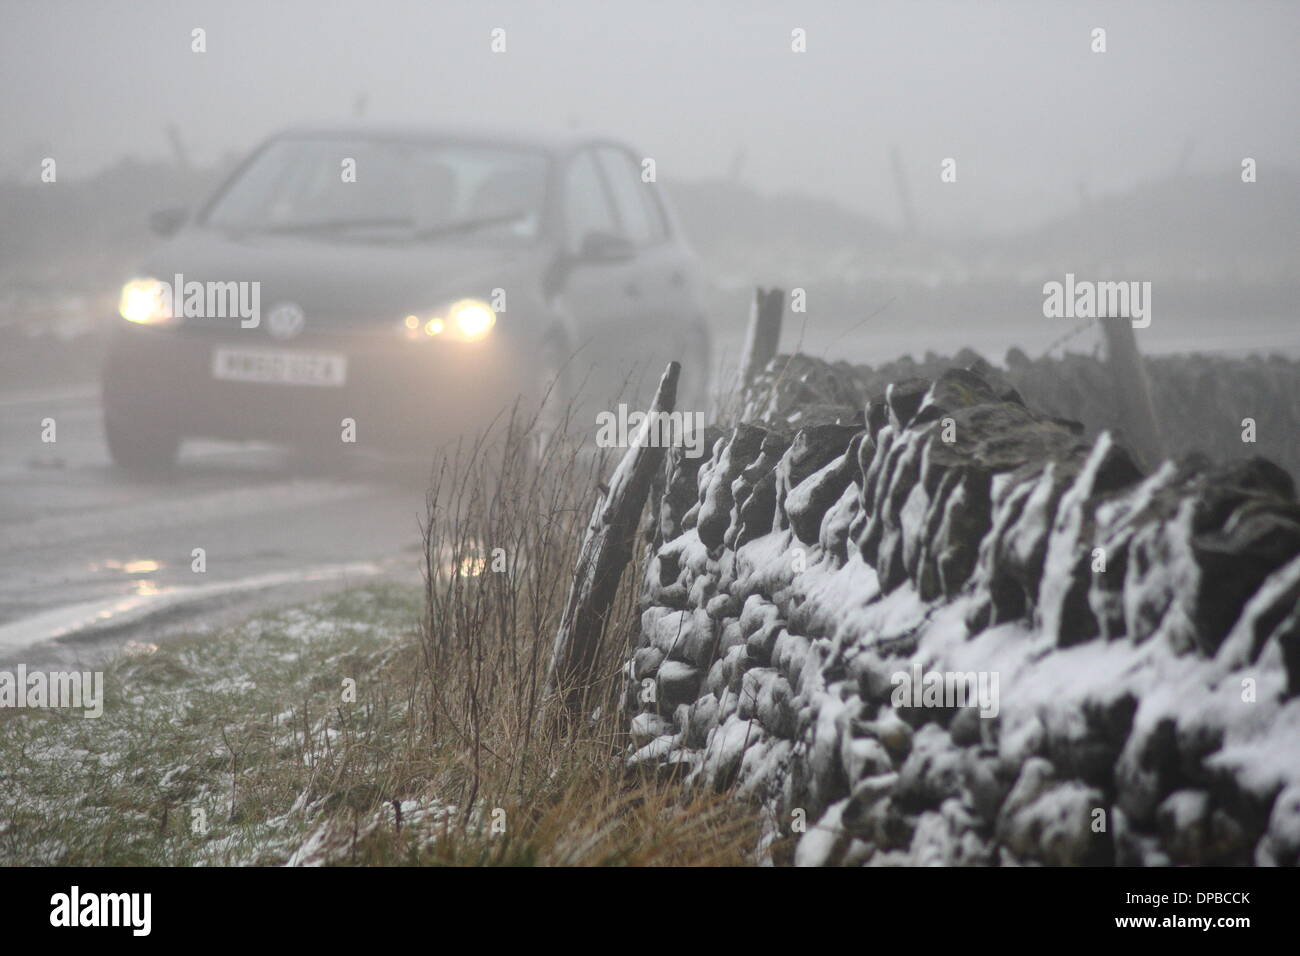 Peak District, Derbyshire, UK. 11th January 2014. Wintry conditions on the A6187 near Castleton made for  tricky driving conditions after overnight snowfall hit stretches of high ground in Derbyshire's Peak District. Credit:  Matthew Taylor/Alamy Live News - Stock Image